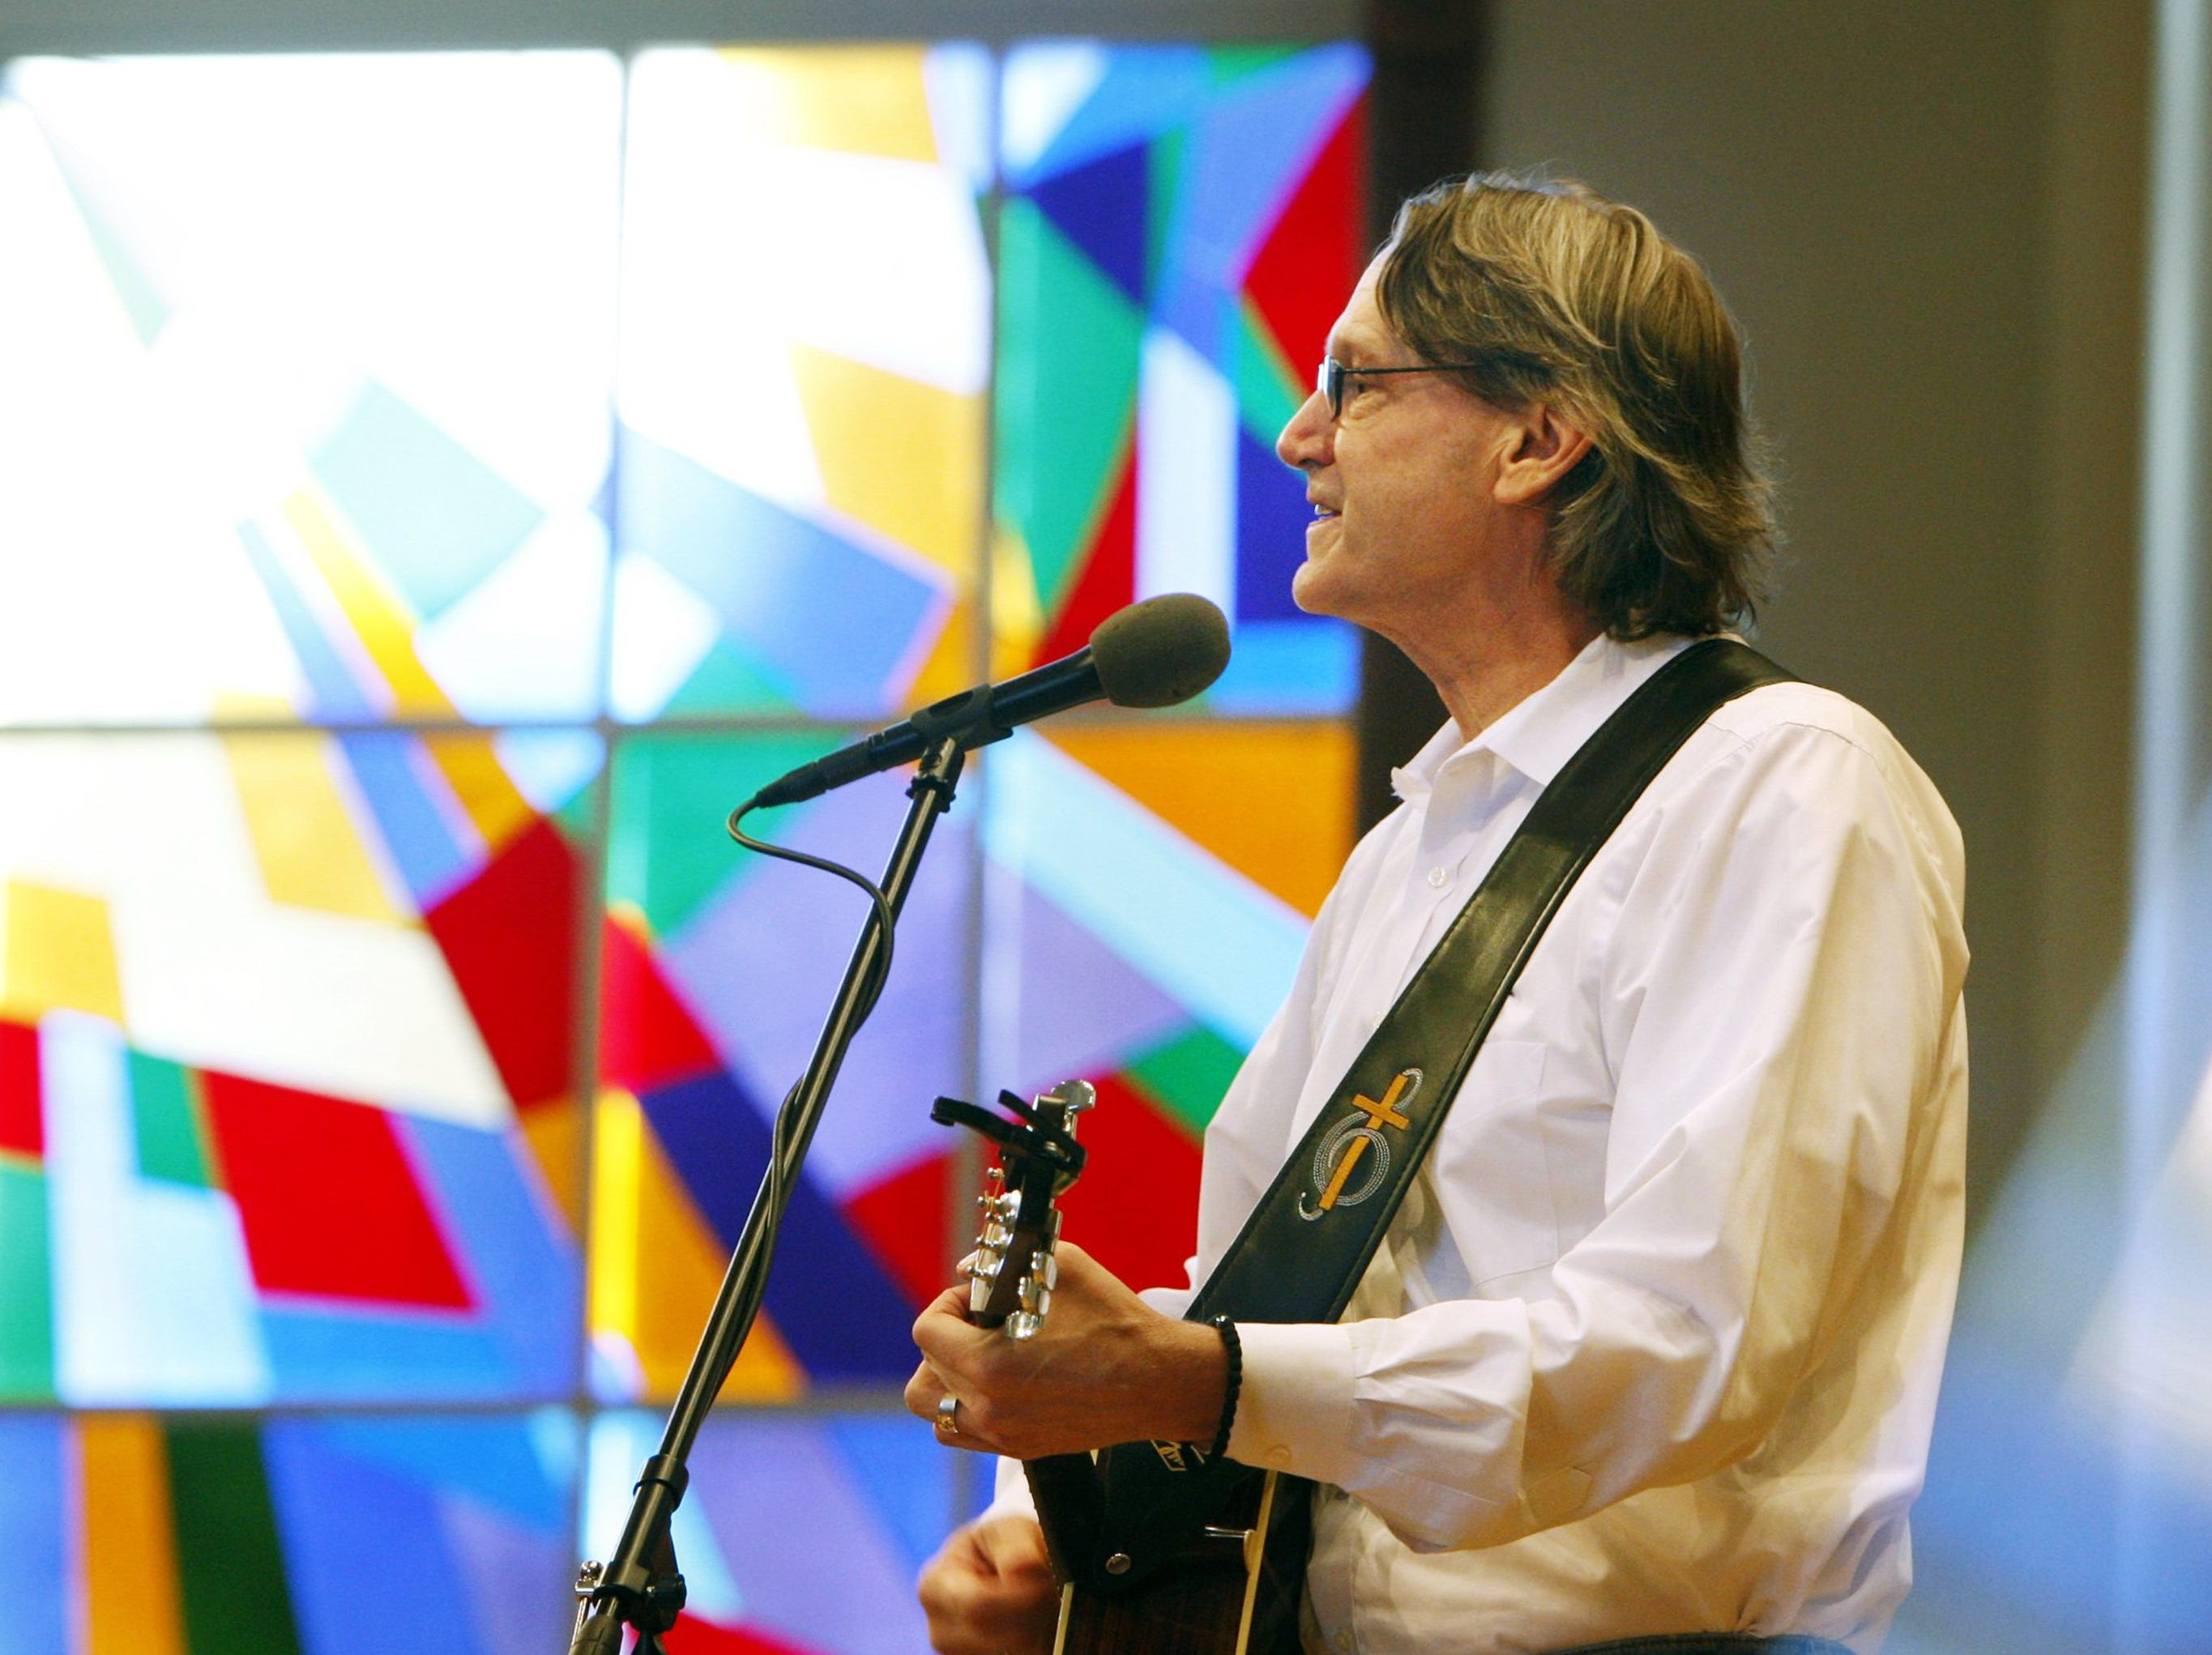 November 2, 2011 - Rev. John Kilzer plays the Marguerite Francis Music at Noon concert series held every Wednesday at Bartlett United Methodist Church through December 14th. (Alan Spearman/The Commercial Appeal)